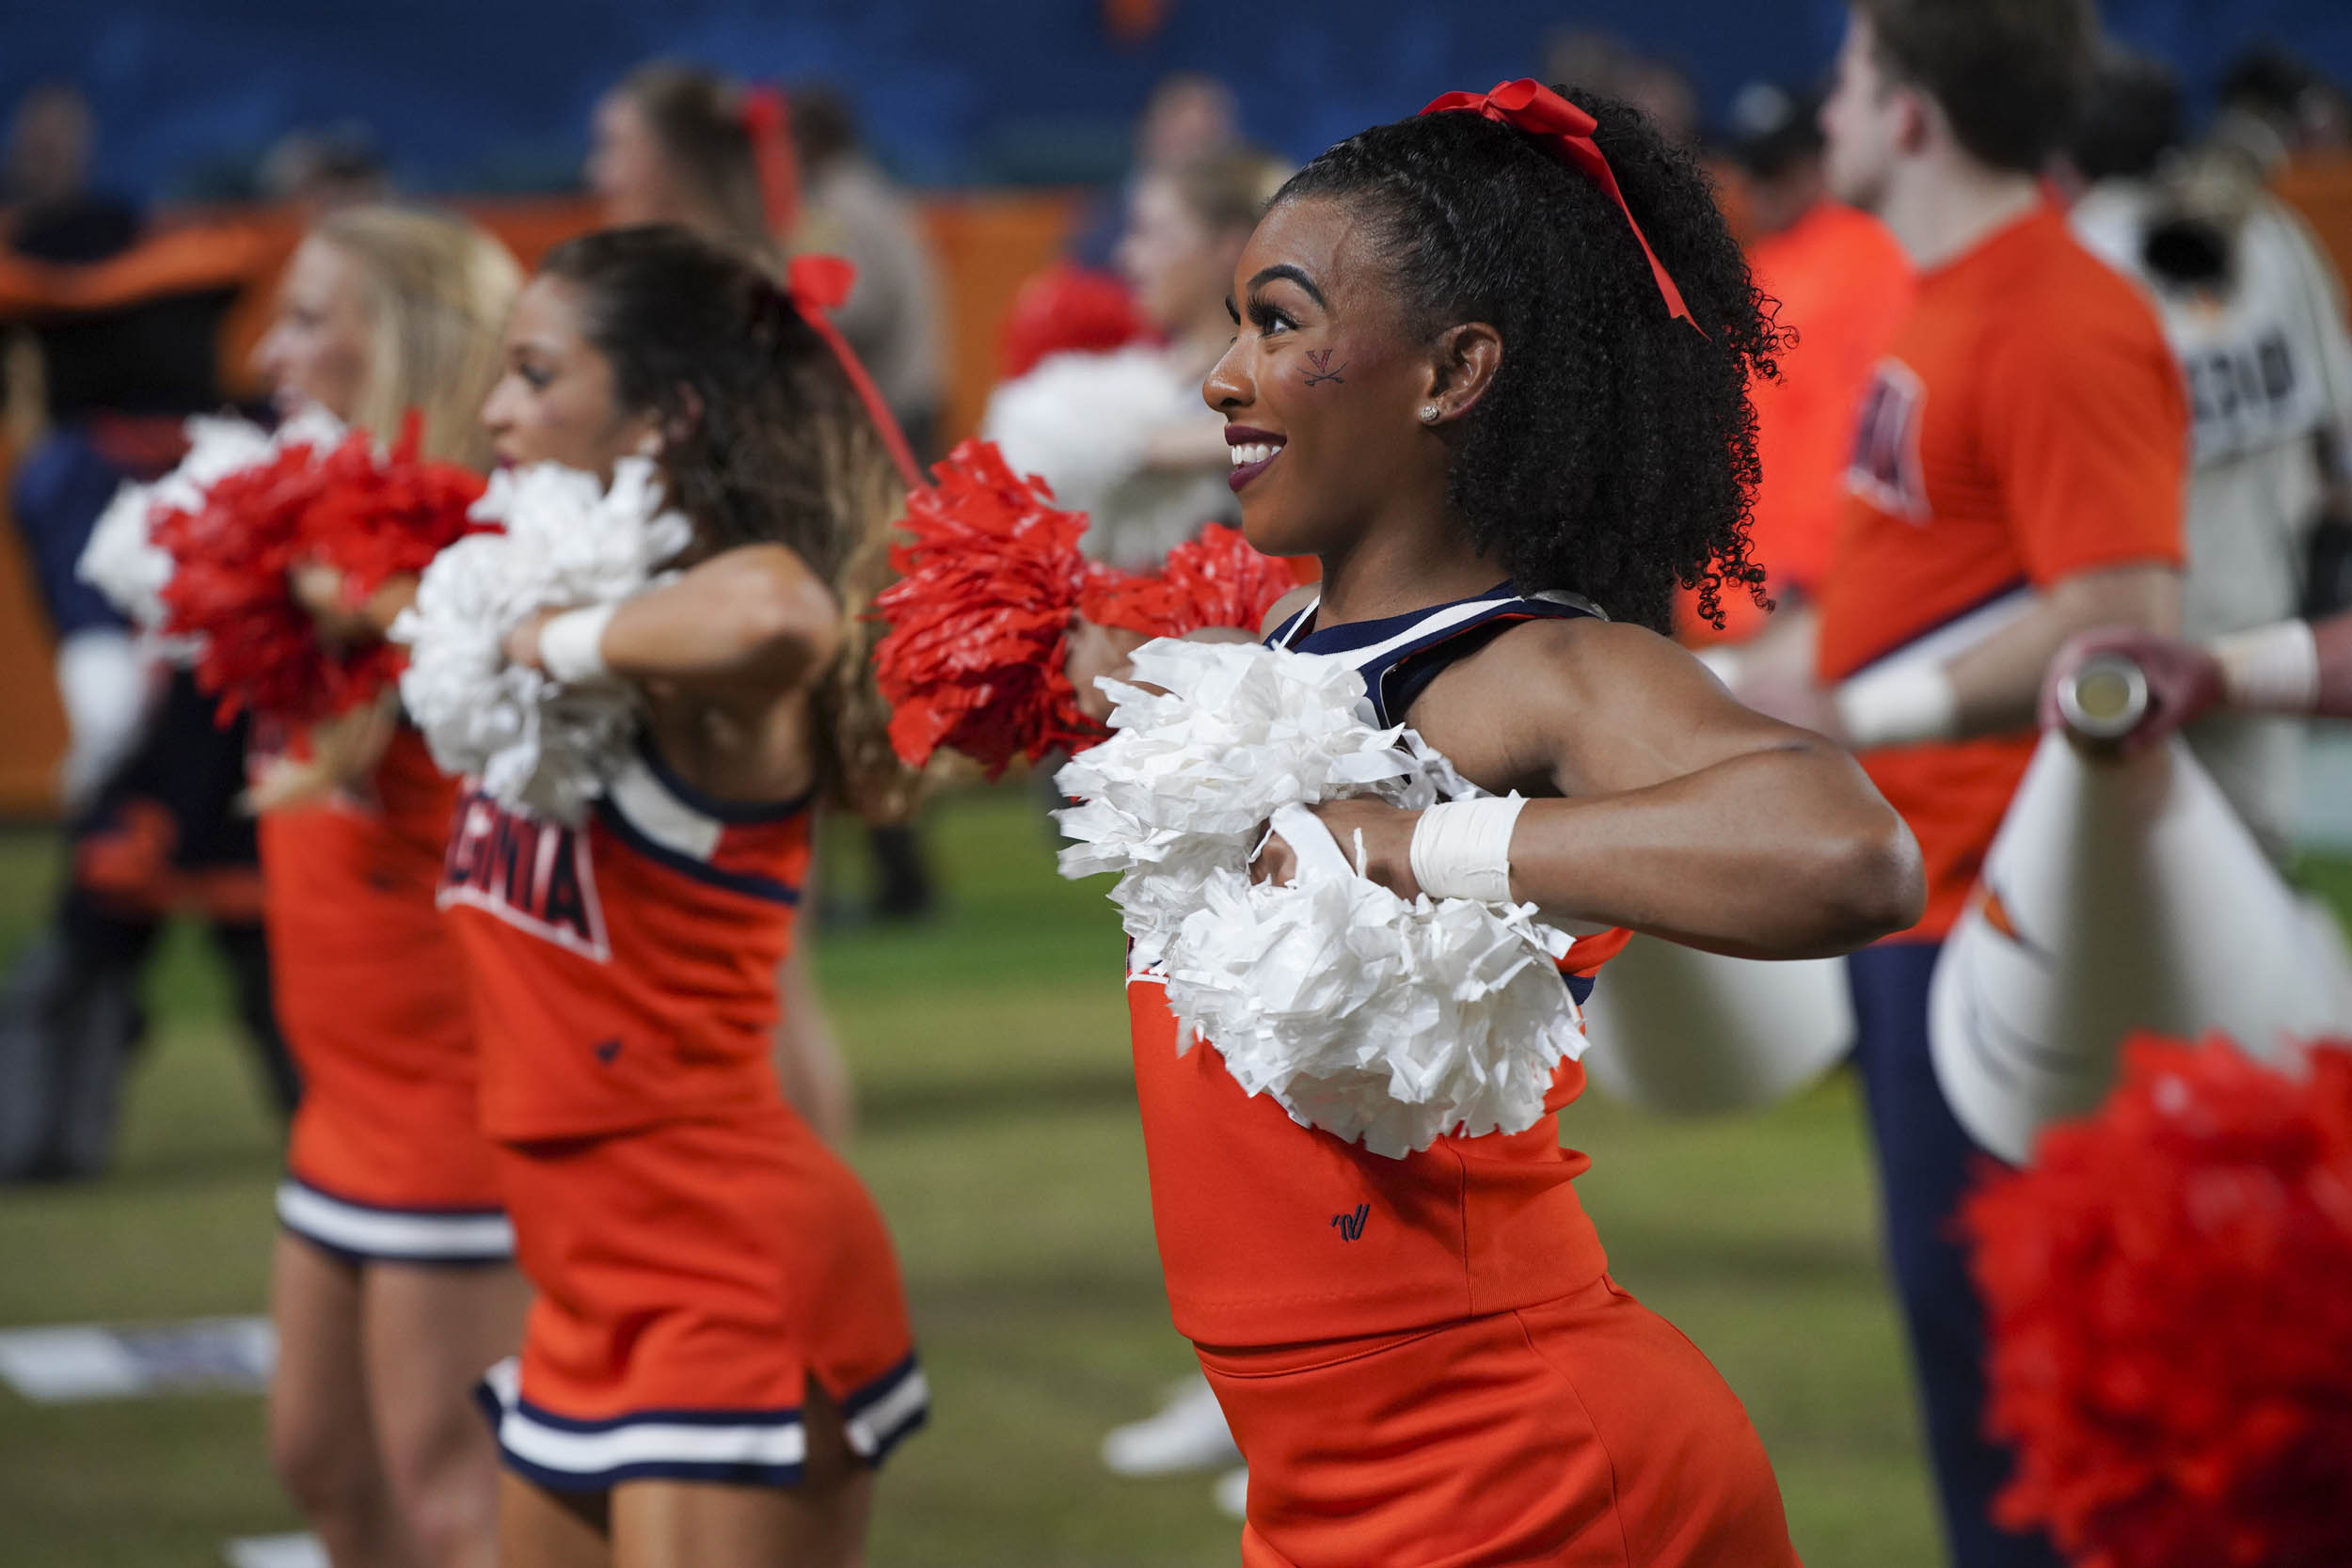 Along with the band, UVA's cheerleading team was hard at work all weekend, from pre-game pep rallies to sideline cheers.